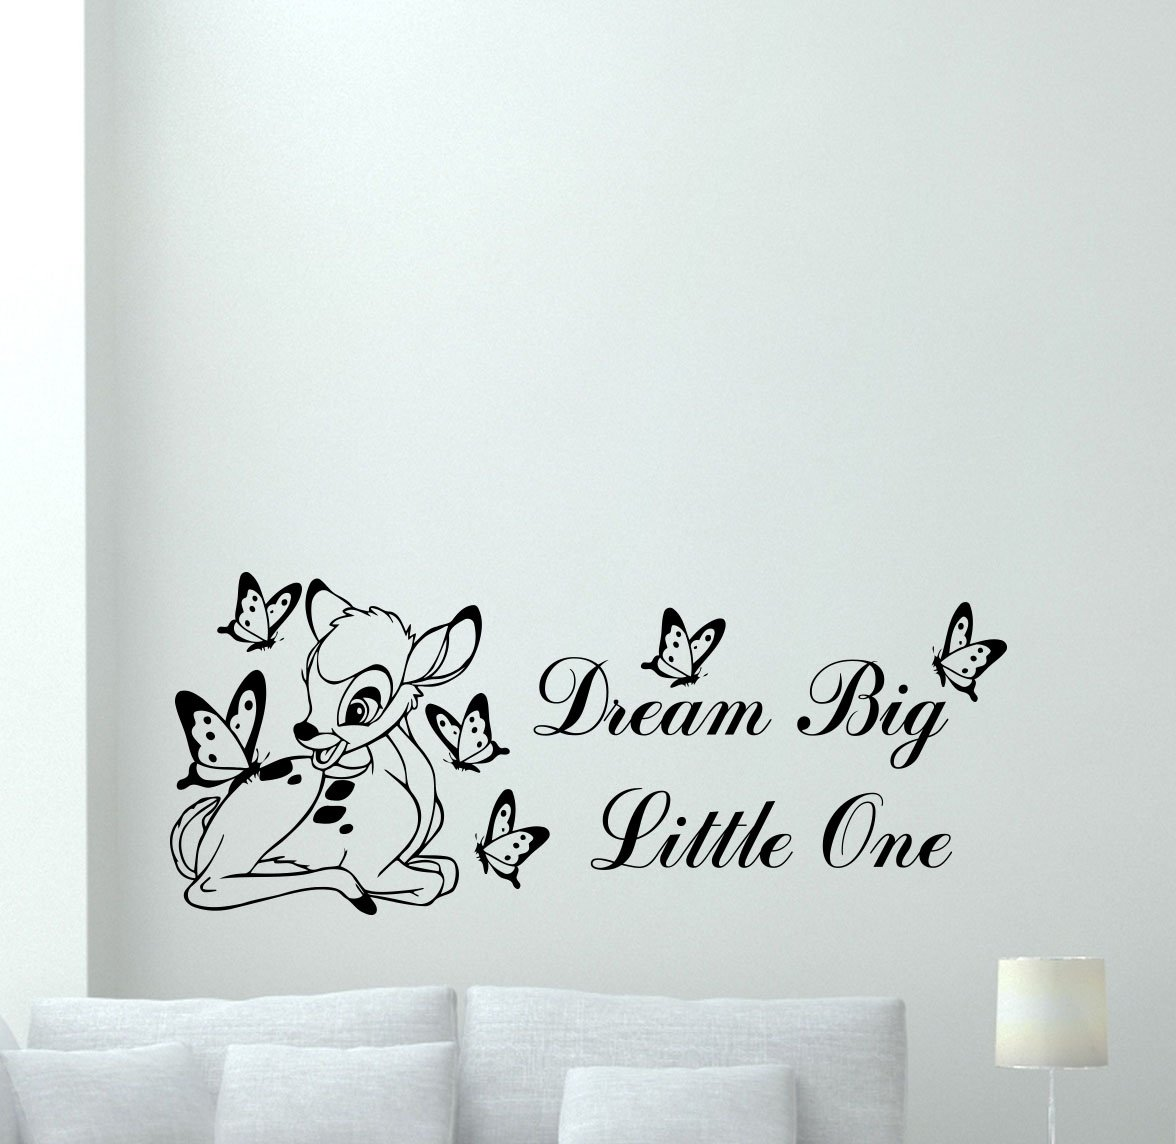 Amazon bambi disney wall decal dream big little one quote amazon bambi disney wall decal dream big little one quote cartoon butterflies poster vinyl sticker kids teen boy room nursery bedroom wall art decor amipublicfo Choice Image